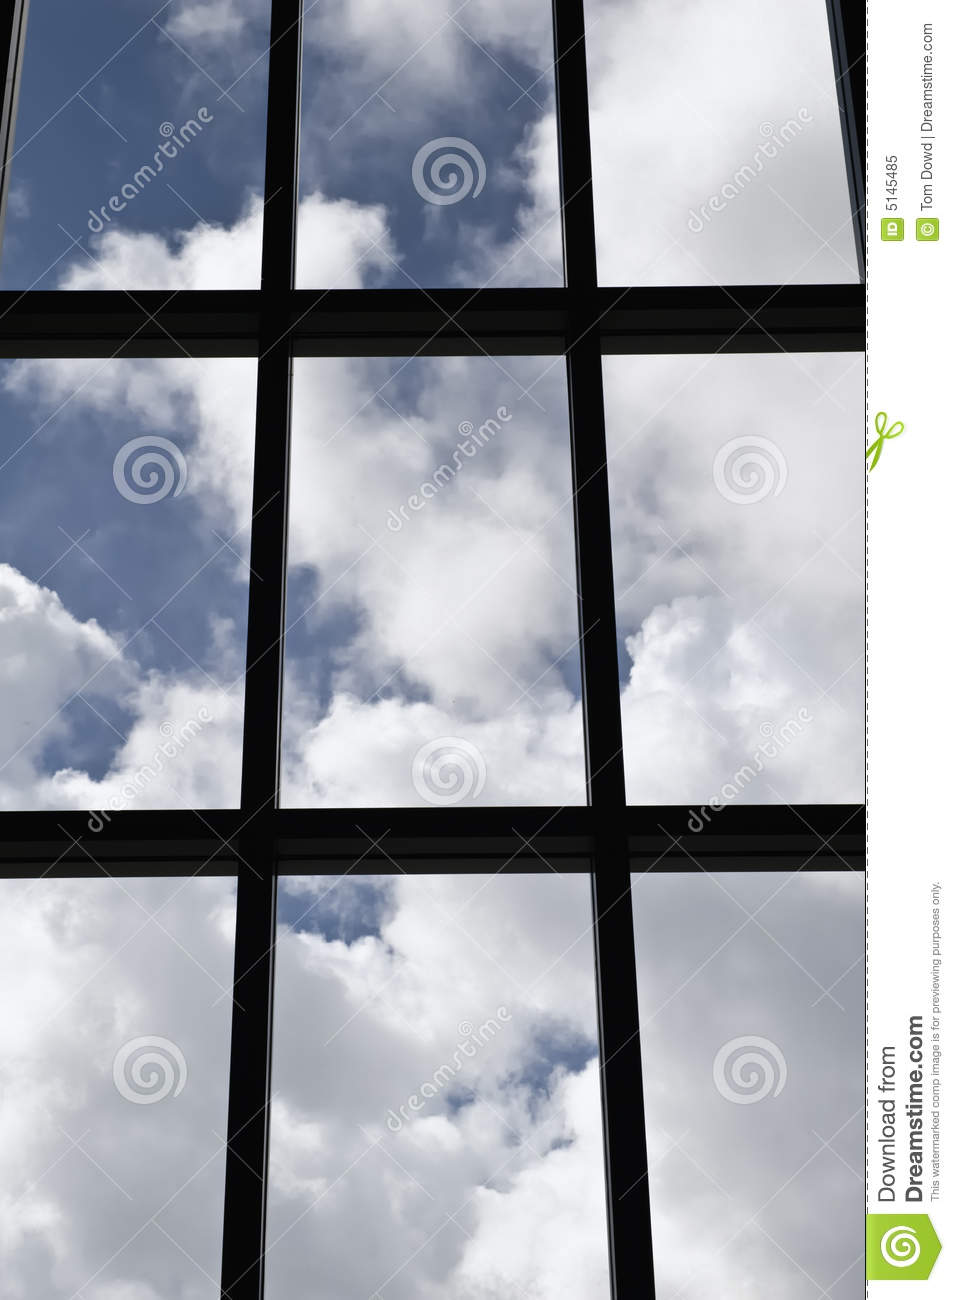 Window Pane Frame stock image. Image of window, blue, pane - 5145485